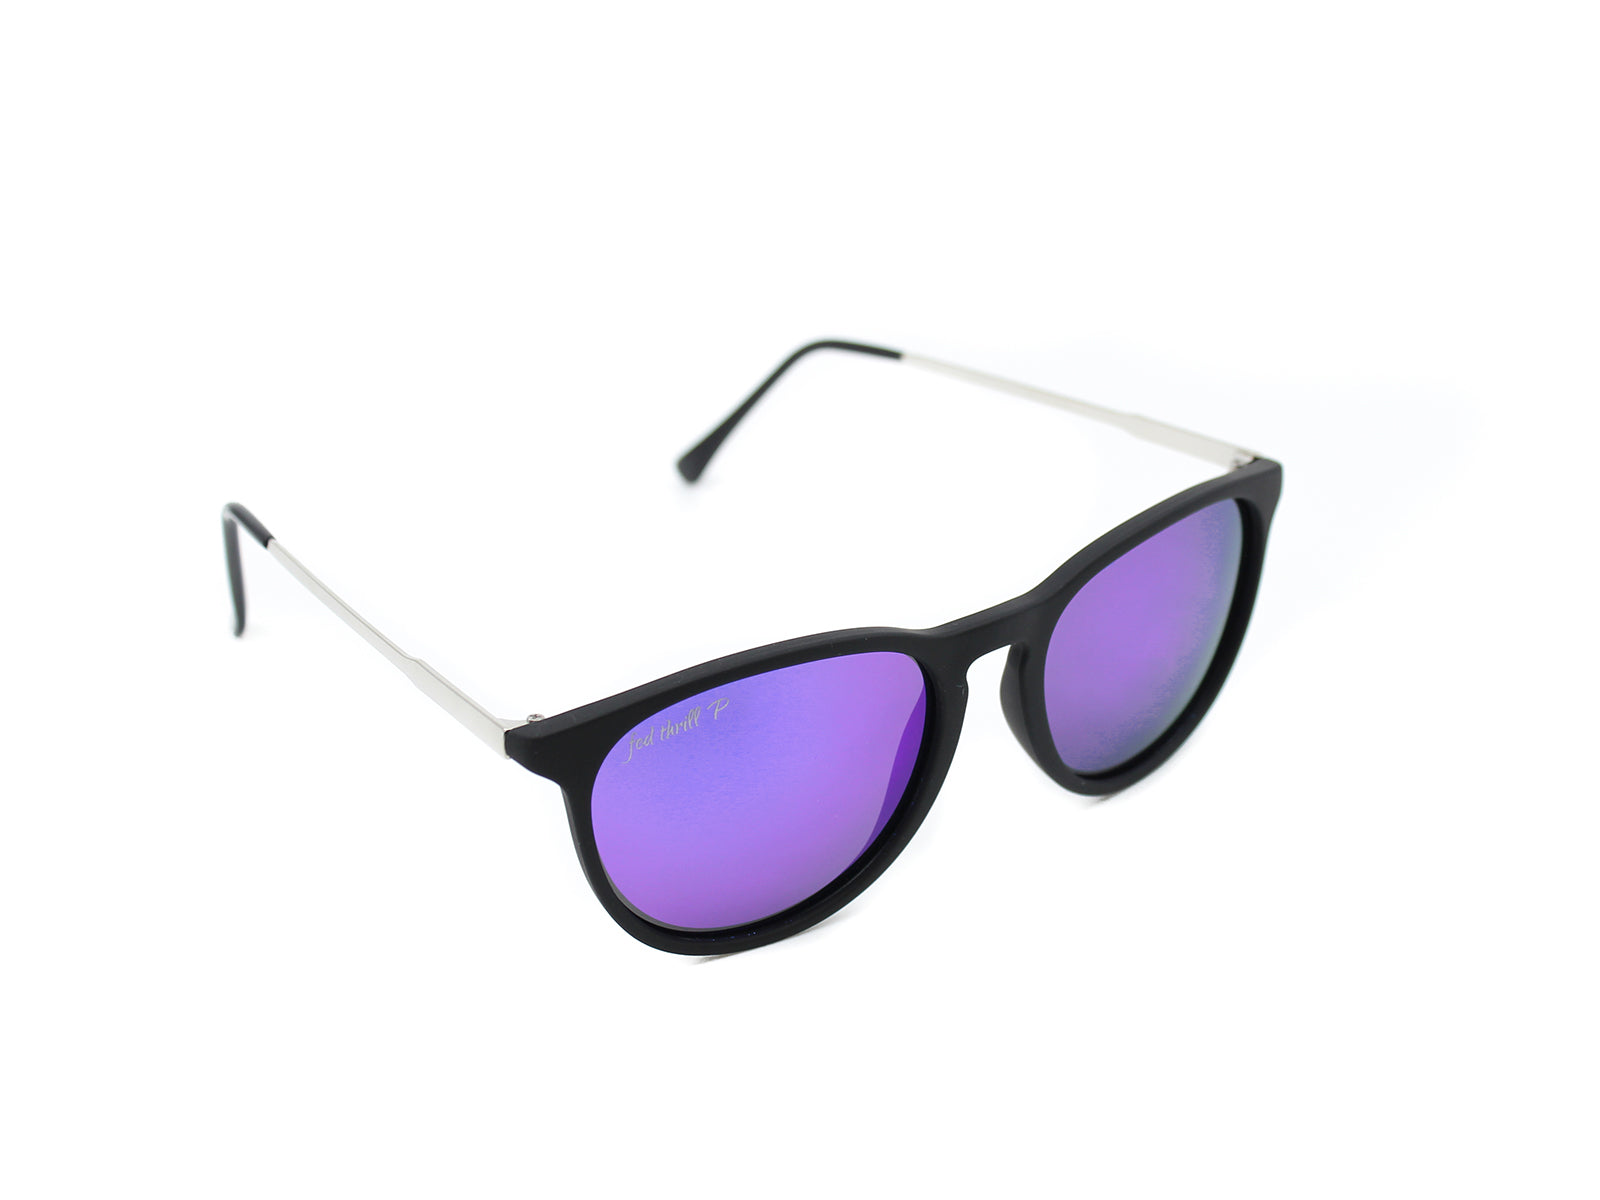 Porters - Talons: Black/ Mirrored Purple Polarized